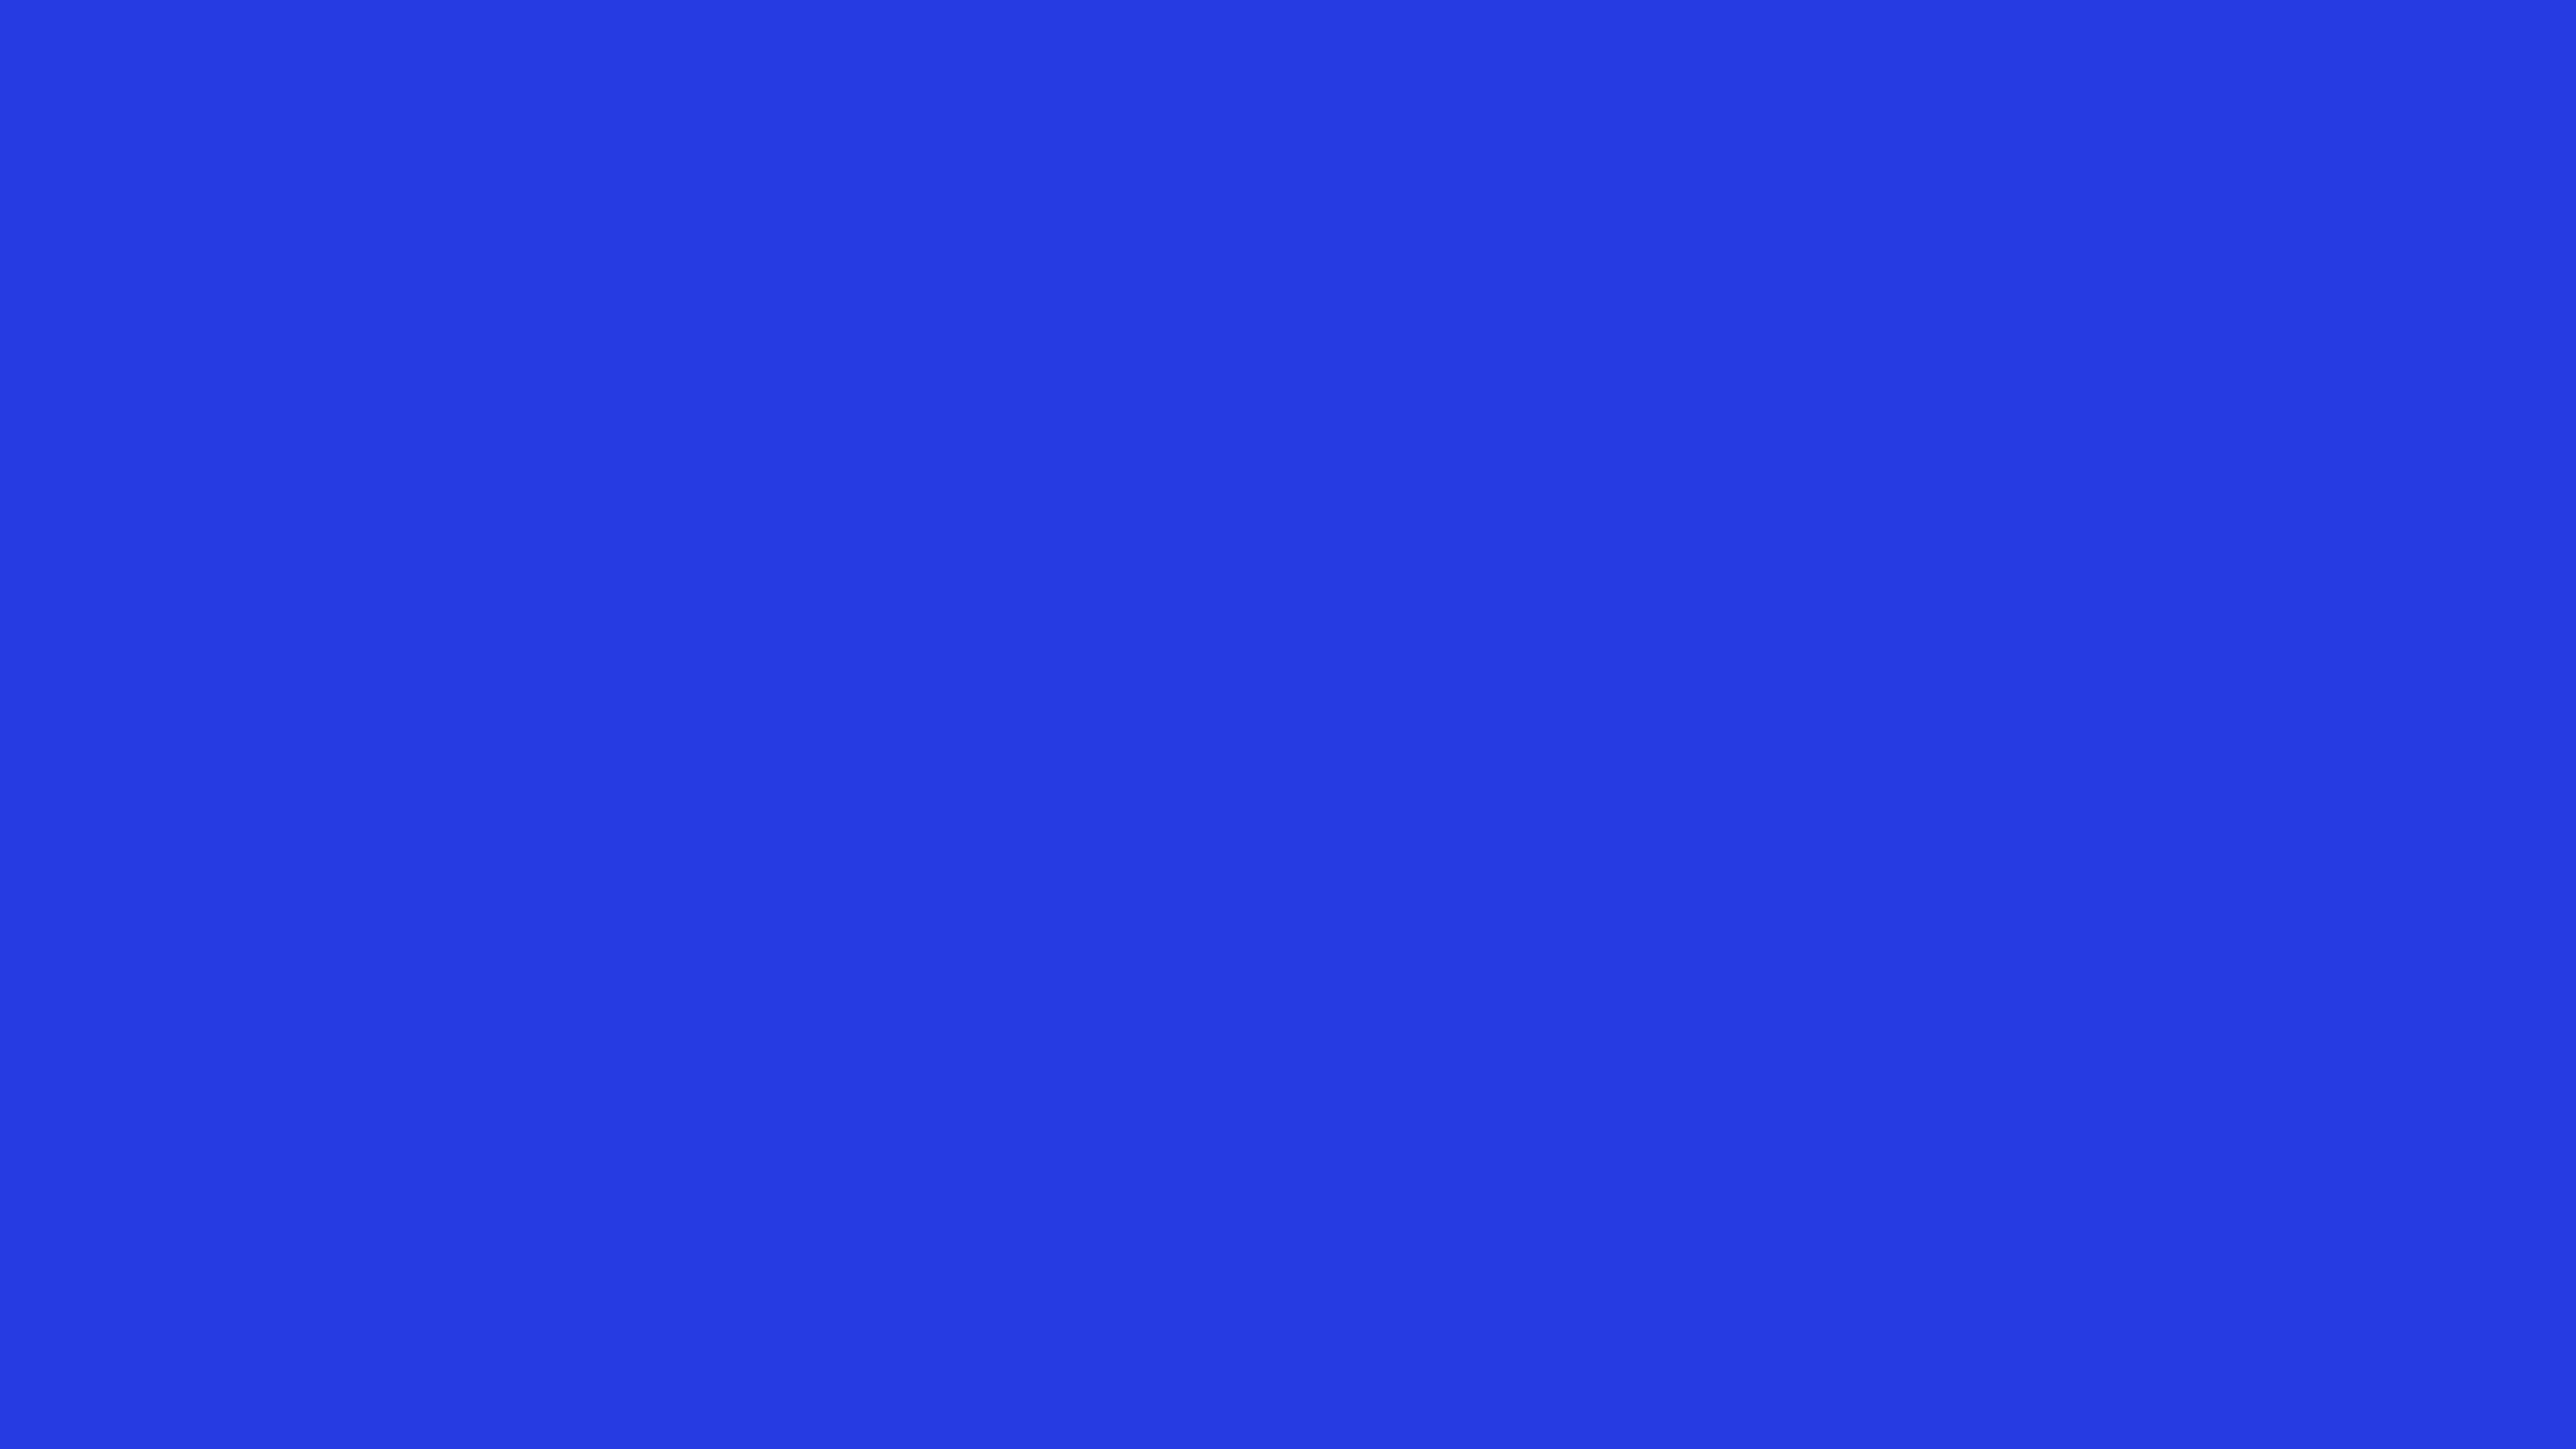 3840x2160 Palatinate Blue Solid Color Background